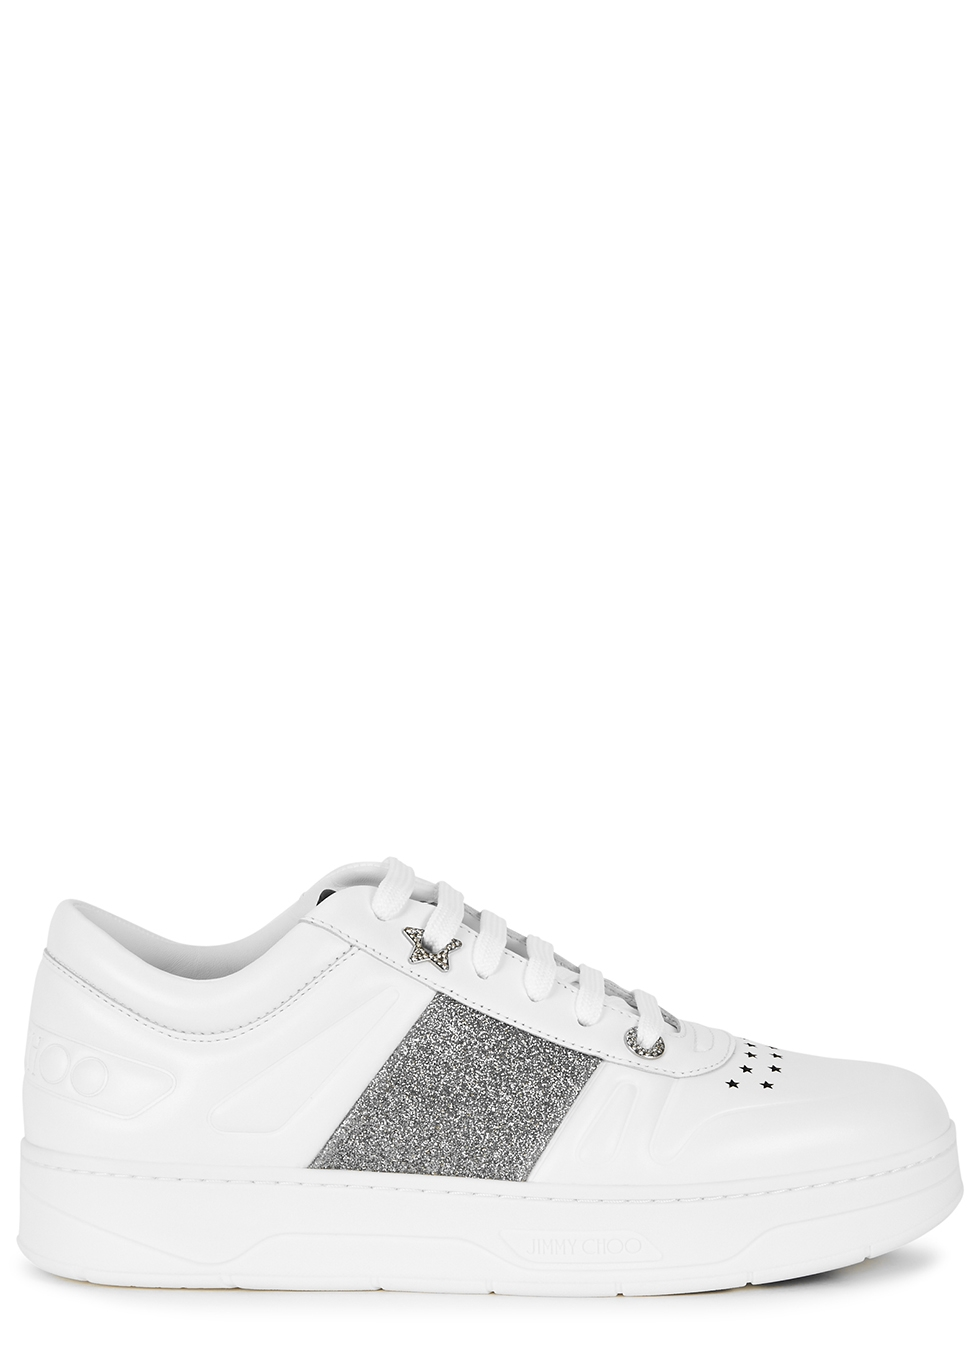 Hawaii white leather sneakers